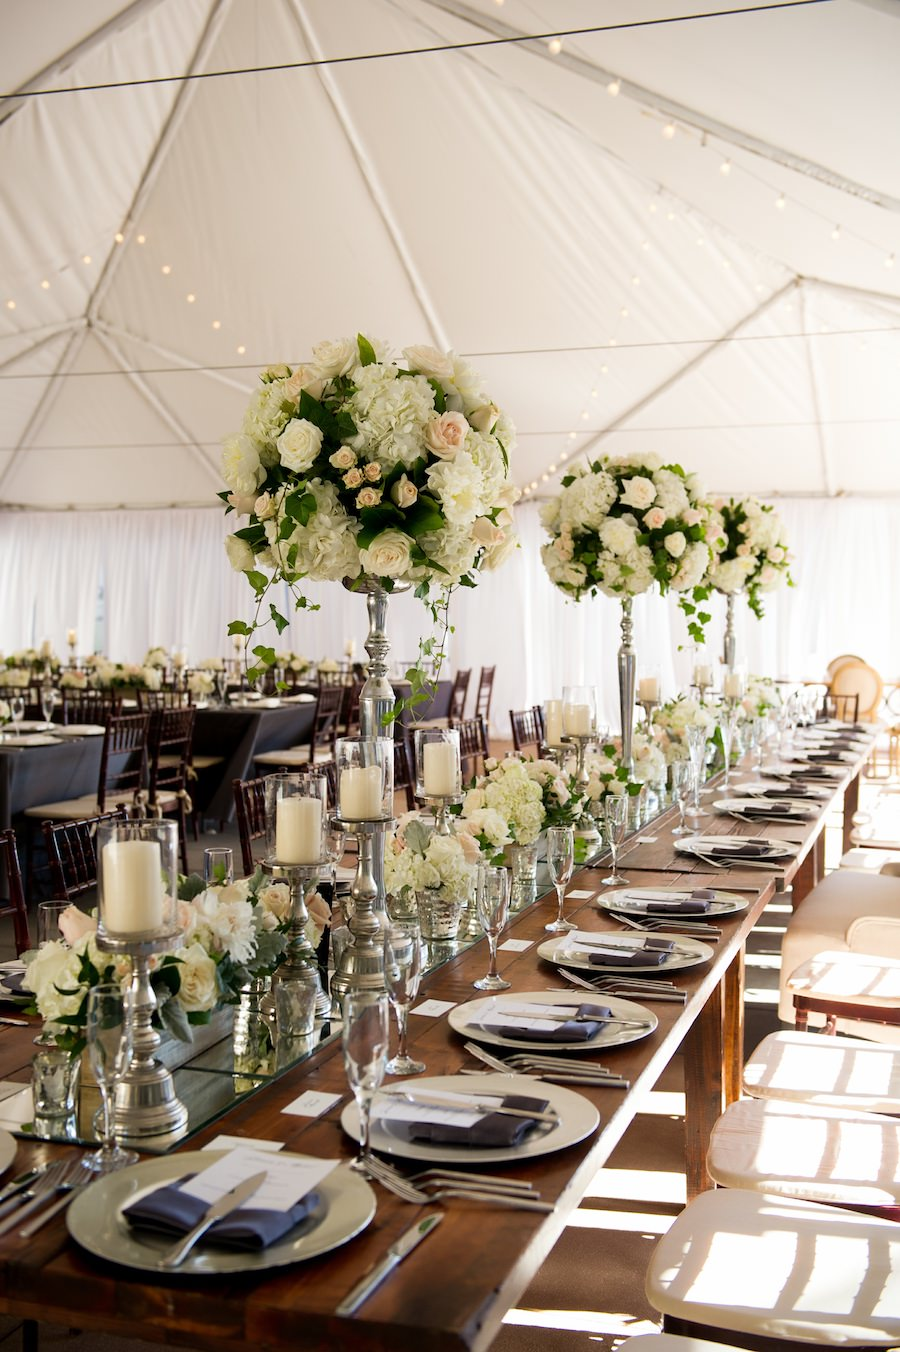 Outdoor, Tampa Hotel Wedding Reception Decor with Brown Chiavari Chairs, Grey Linens. and Ivory Floral Centerpieces | Tampa Chairs a Chair Affair, Tampa Rentals Coast to Coast Event Rentals, Tampa Linens Connie Duglin Linens